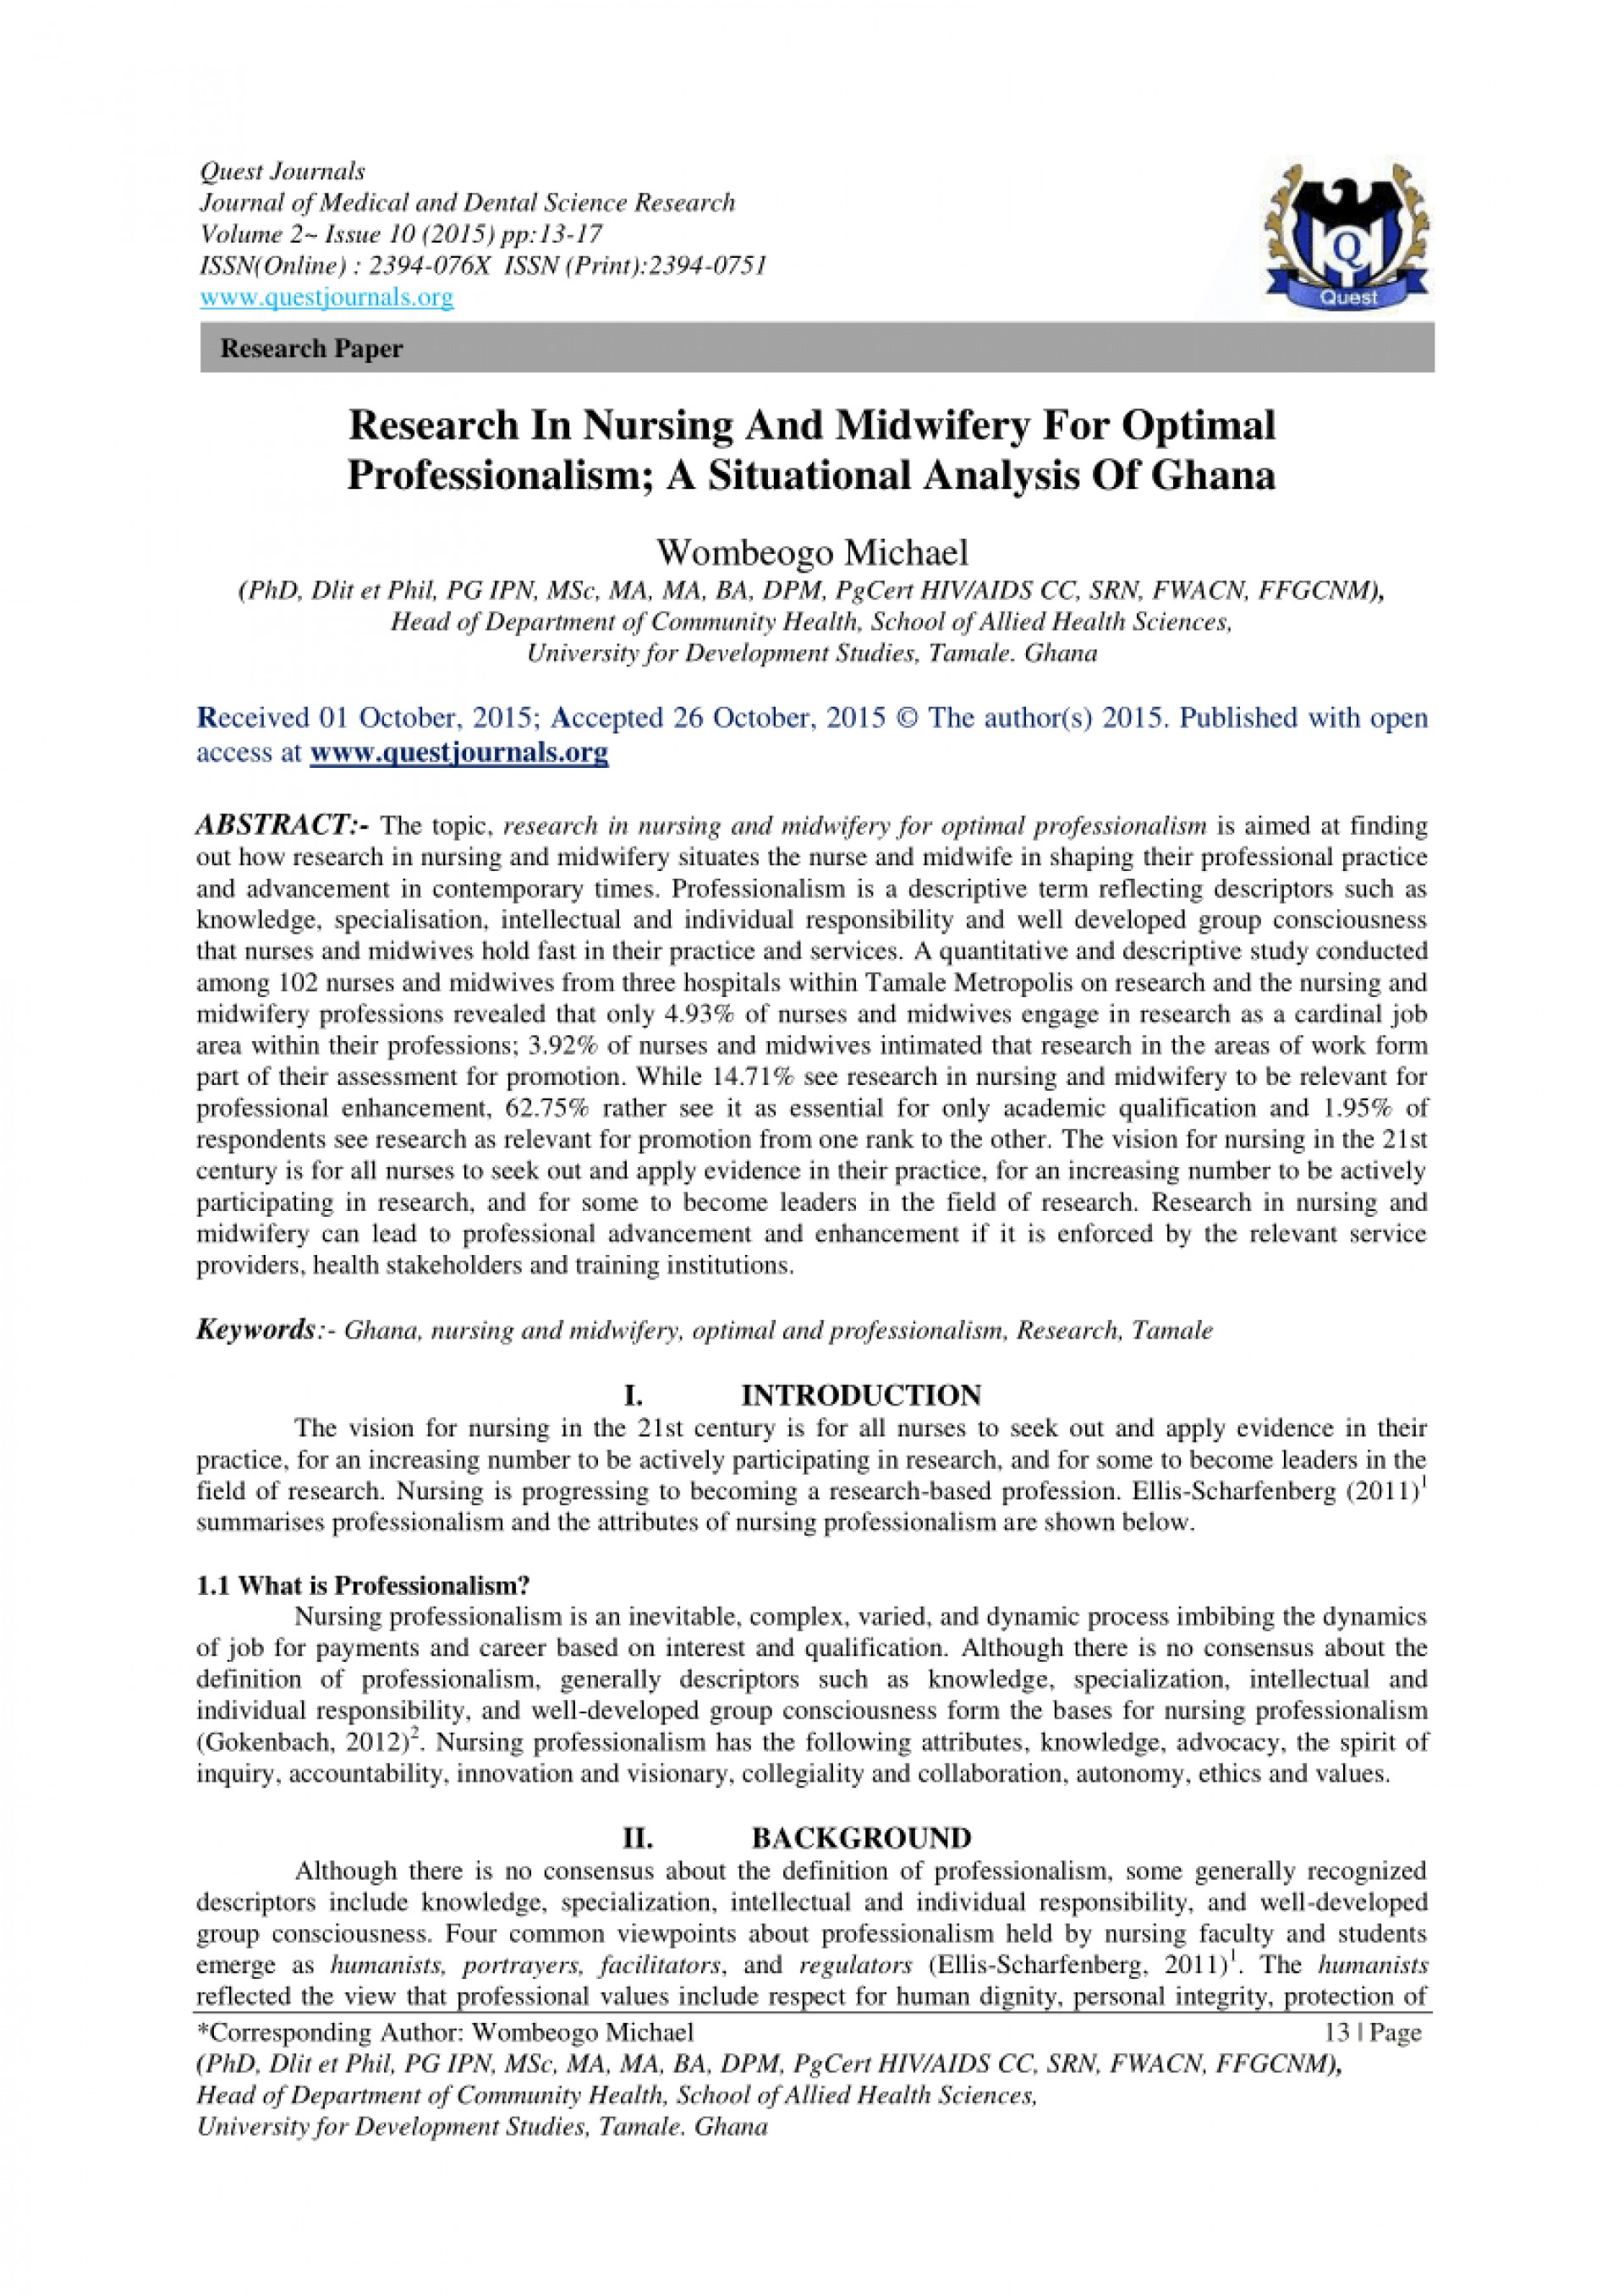 005 Research Paper About Nursing Unforgettable Career Sample Related To Topics 1920